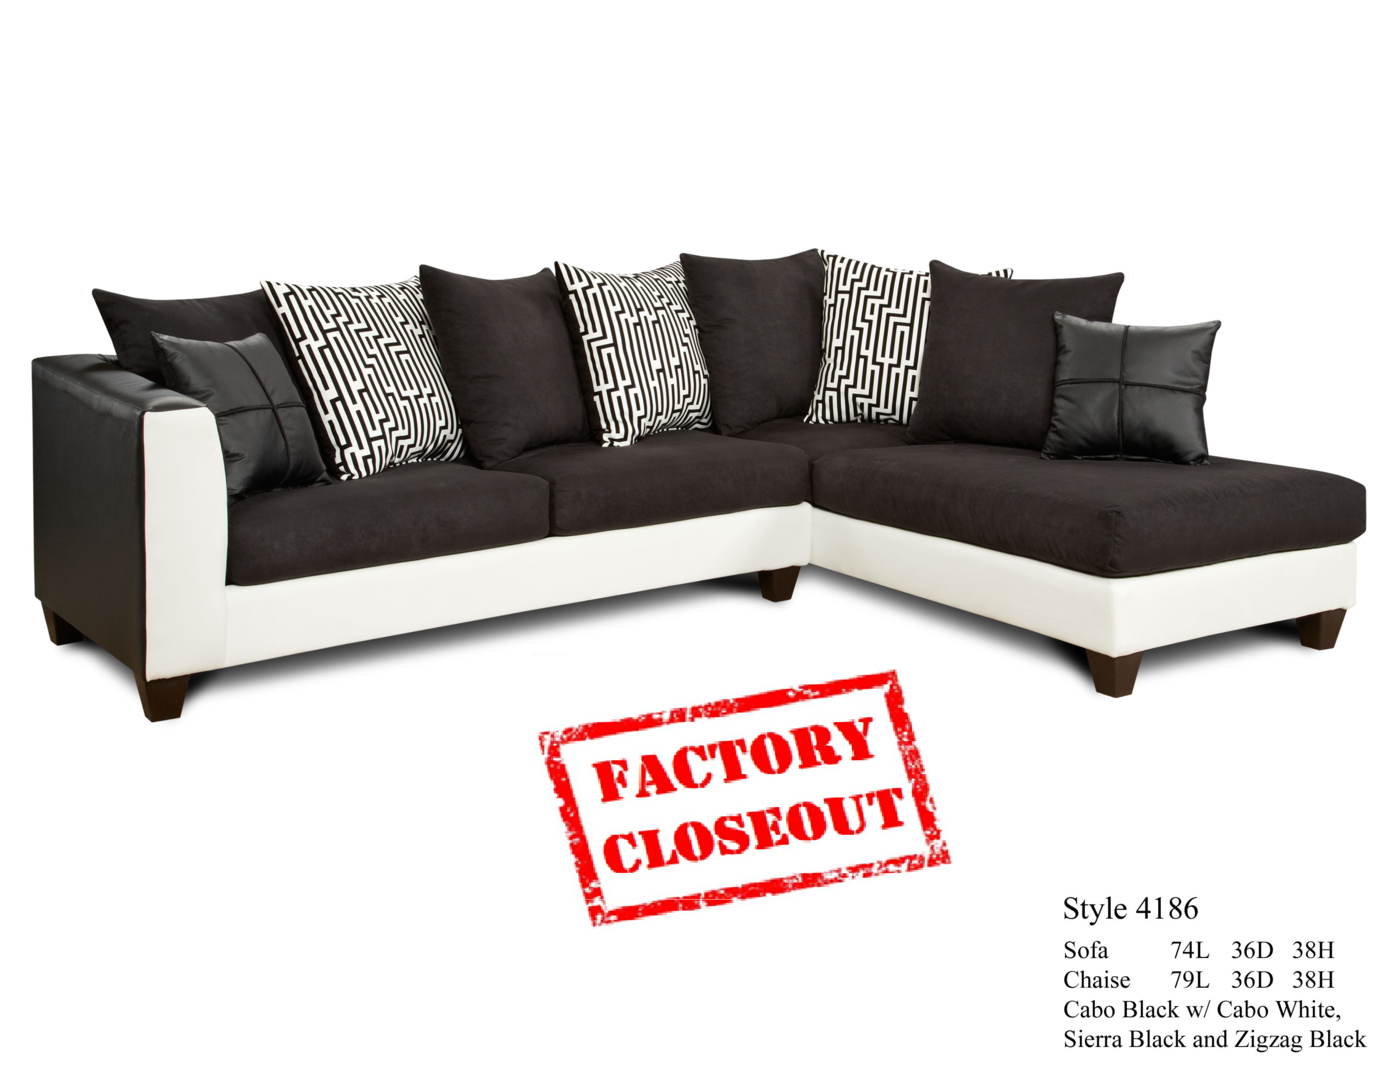 Factory Closeout Living Rooms For Way Less Fort Payne Al